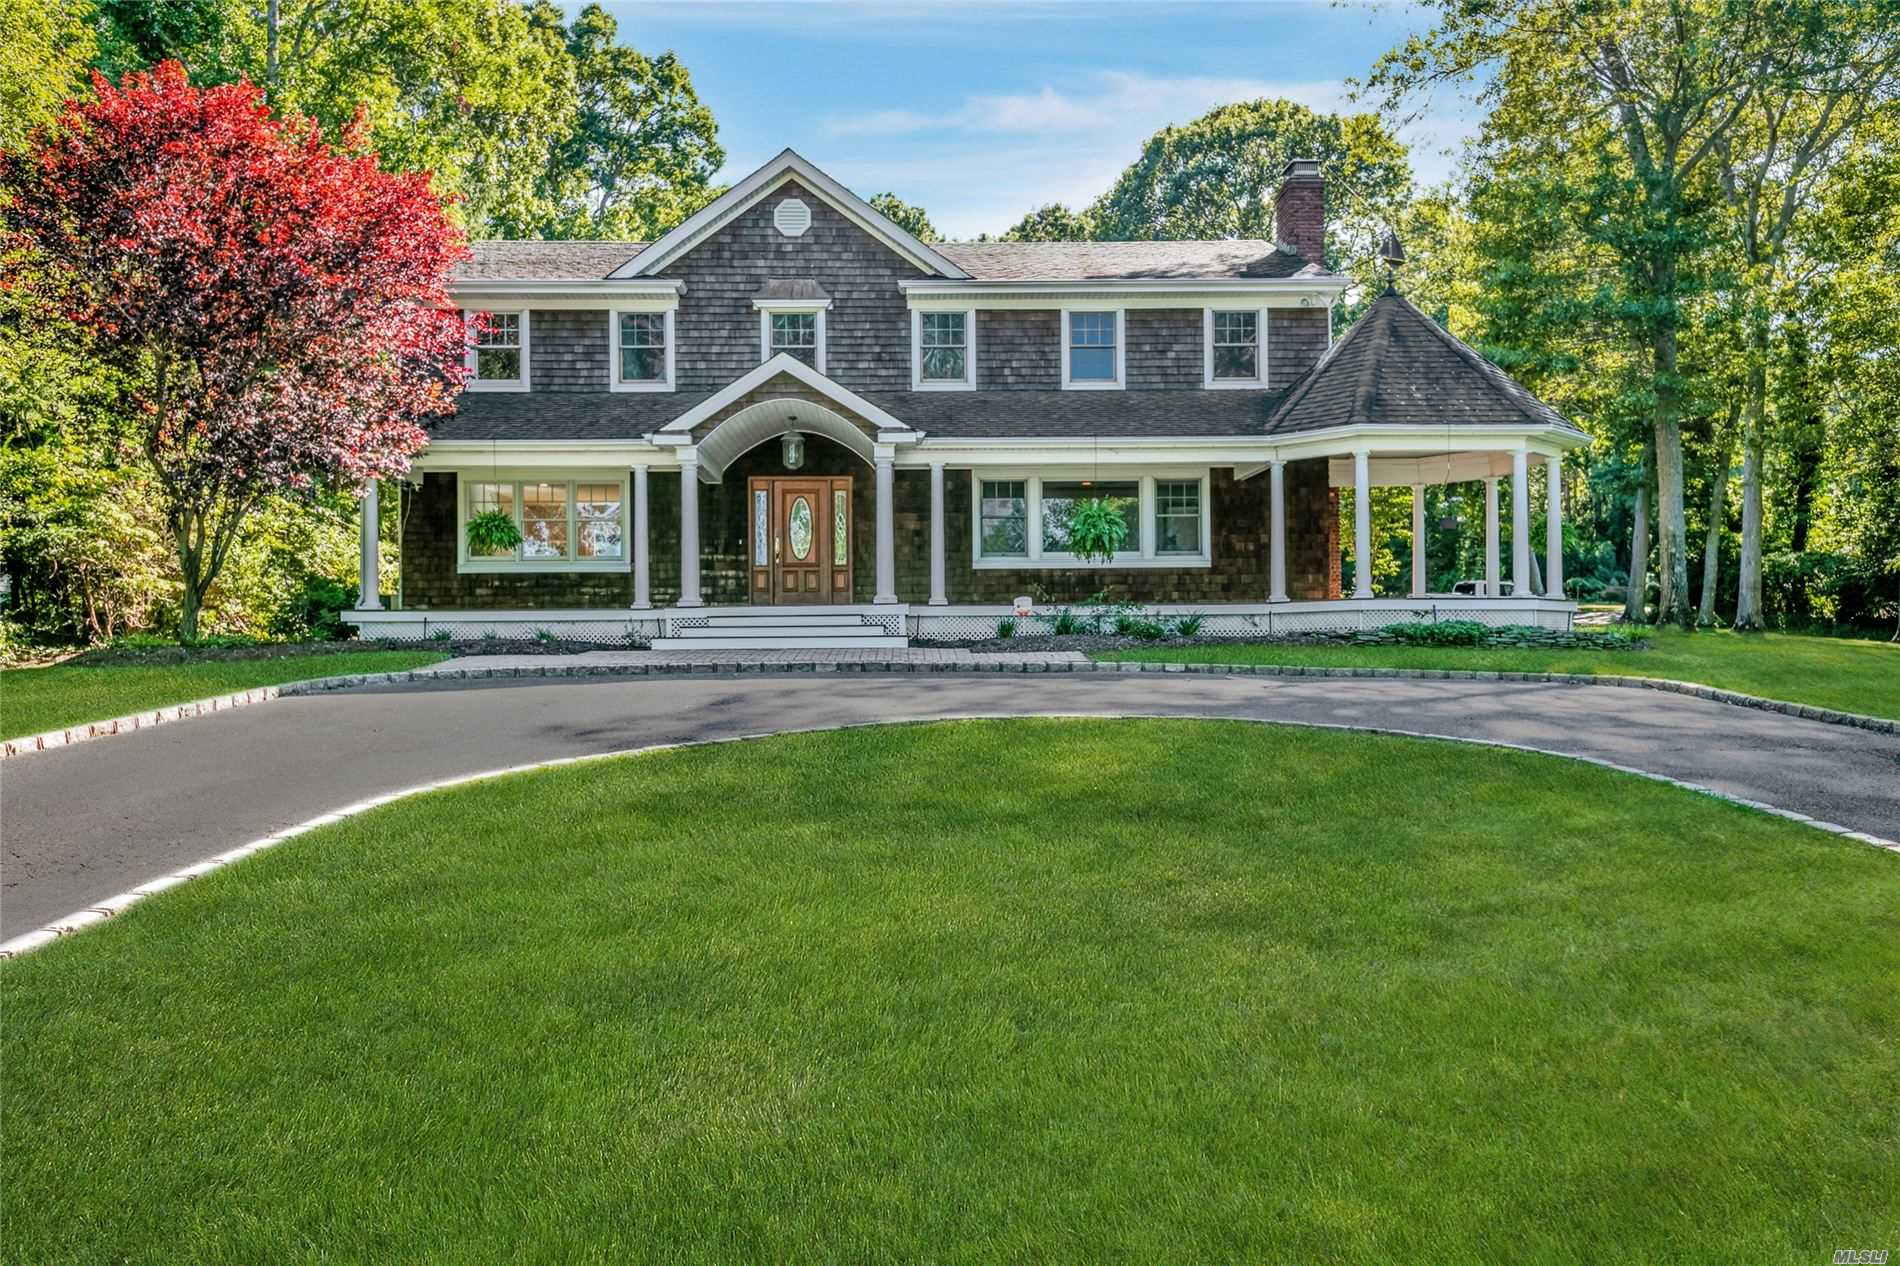 38 Bonnie Dr - Northport, New York